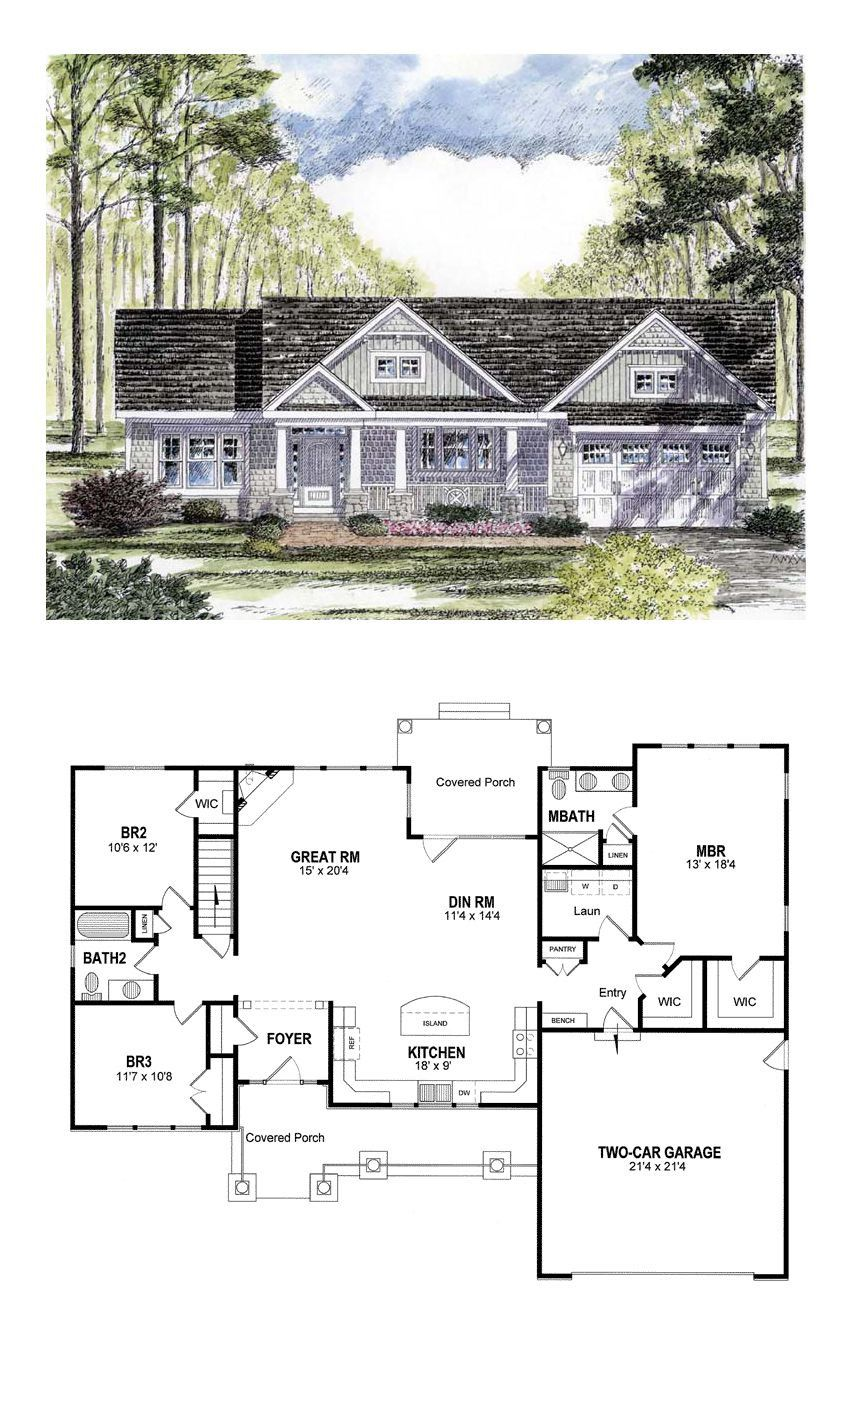 Luxury Small House Plans One Story Cottages Dream Homes Traditional Style House Plan With 3 B In 2020 Ranch House Plans Craftsman House Plans Craftsman House